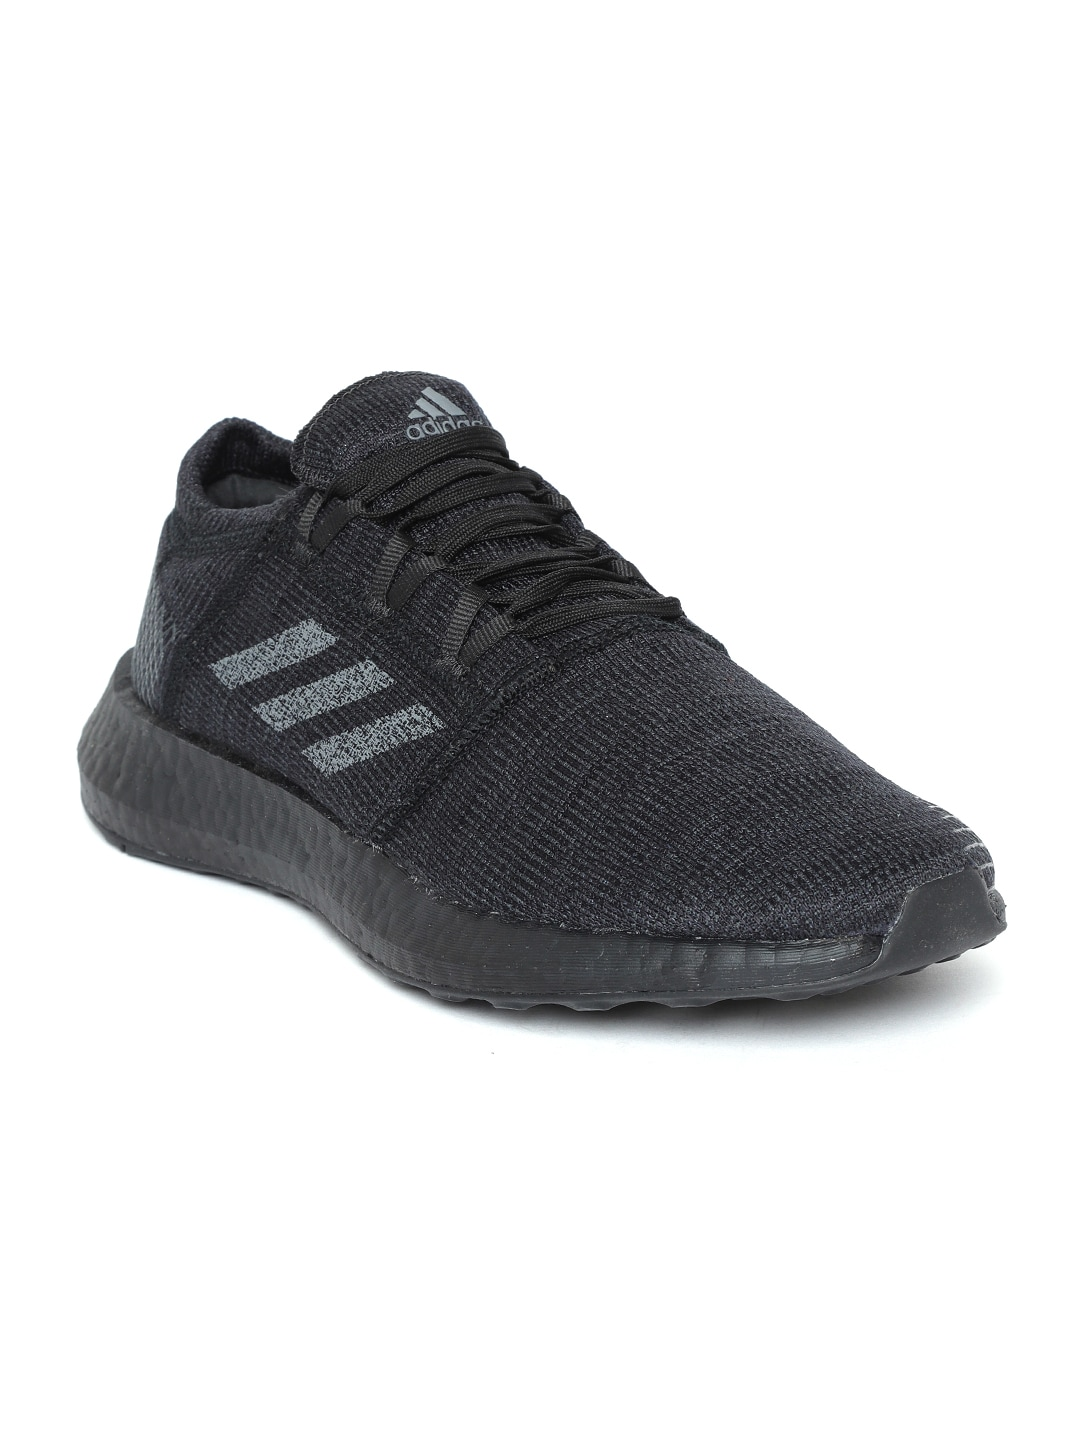 e8904a414cea6 Buy ADIDAS Men Black   Grey Pureboost DPR LTD Running Shoes - Sports ...